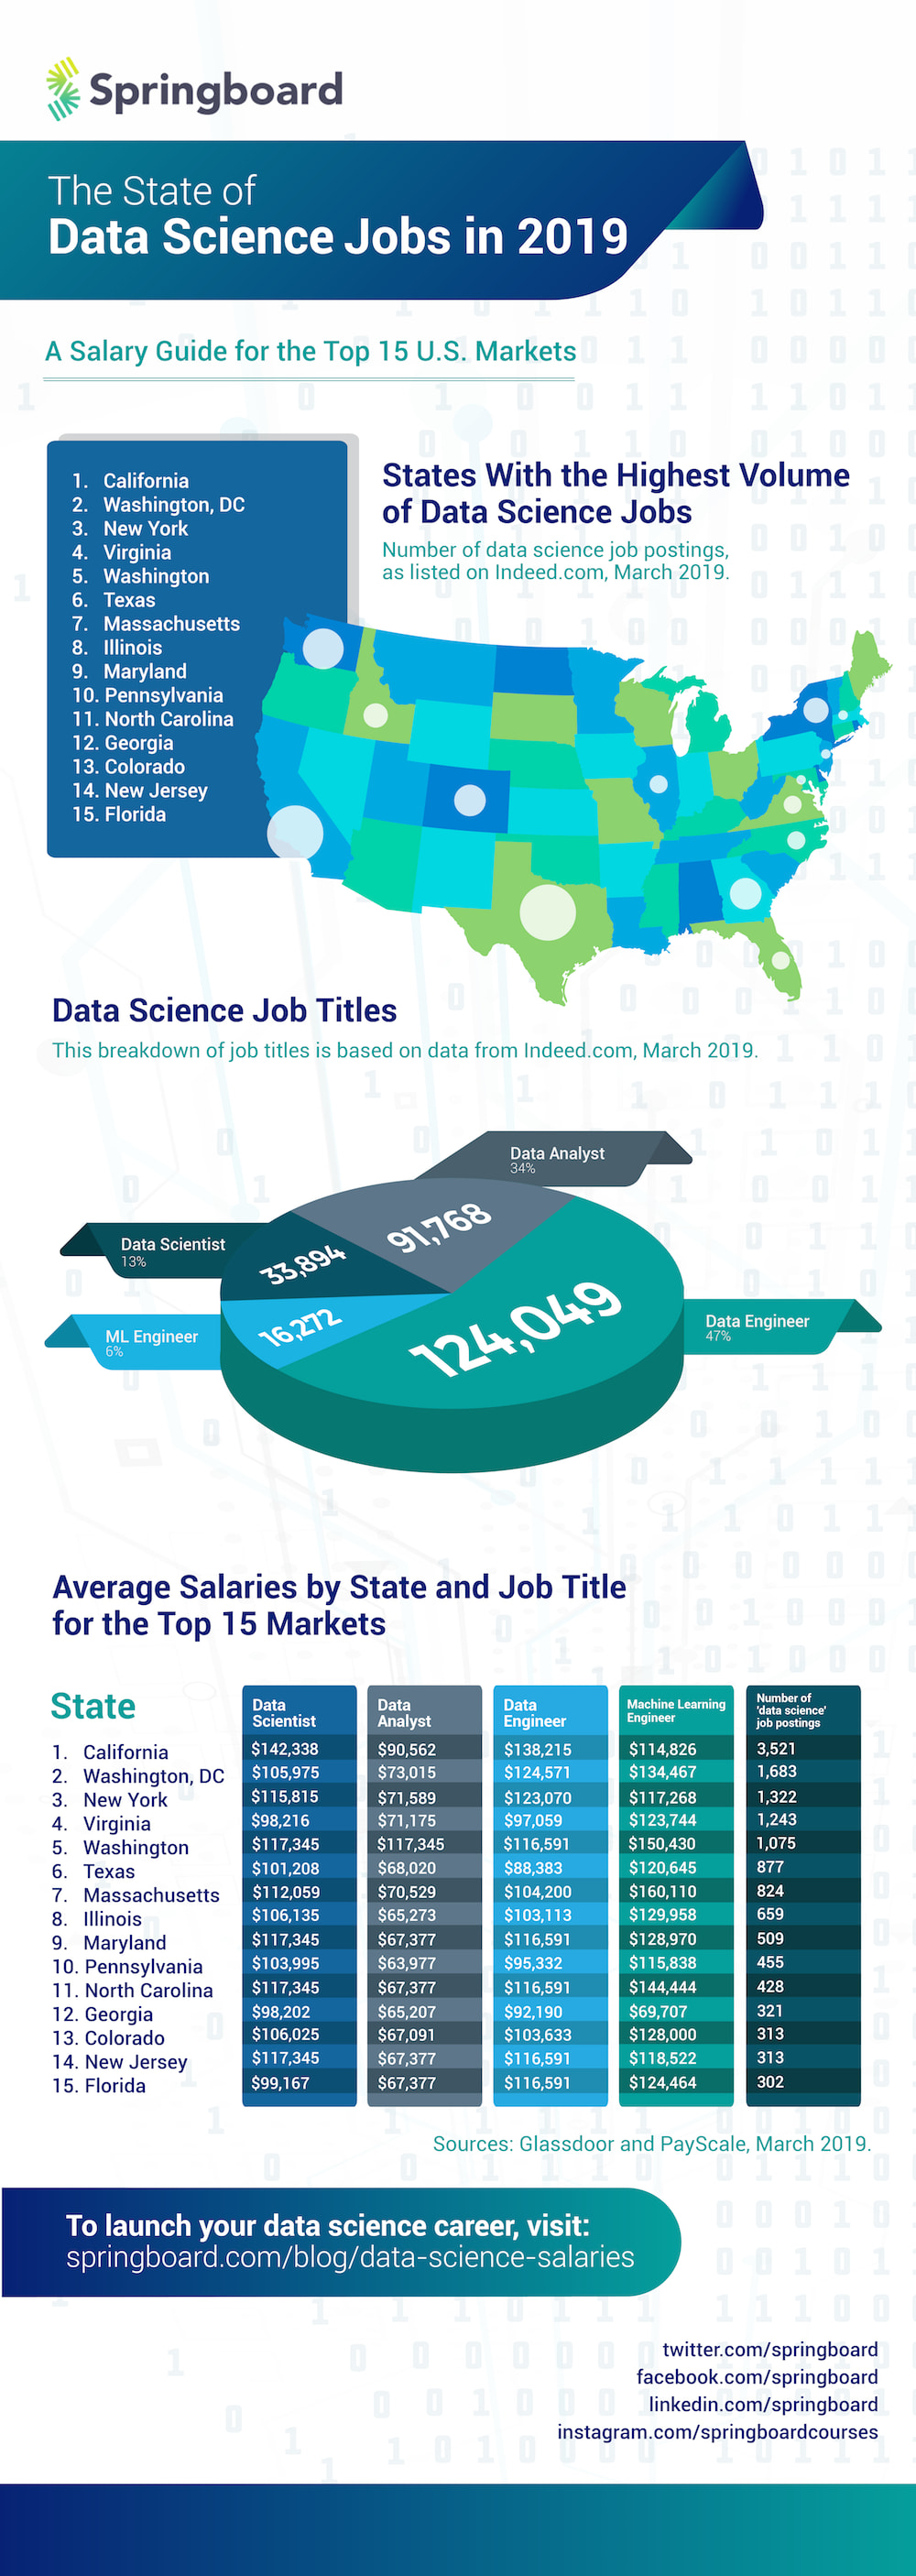 Data science salaries in 2019